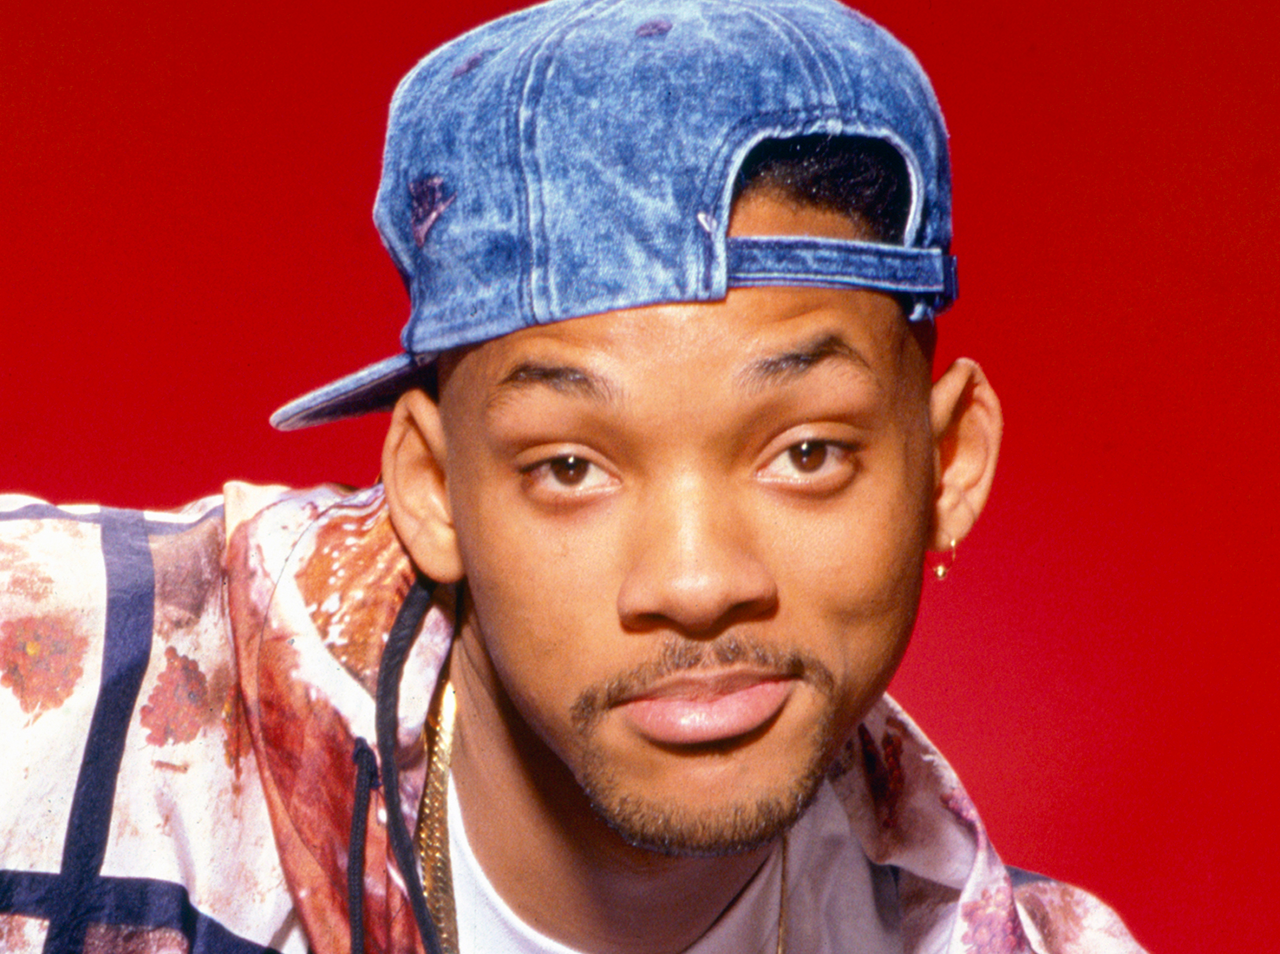 Will Smith e1603281394598 20 Things You May Not Have Realised About The Fresh Prince Of Bel-Air